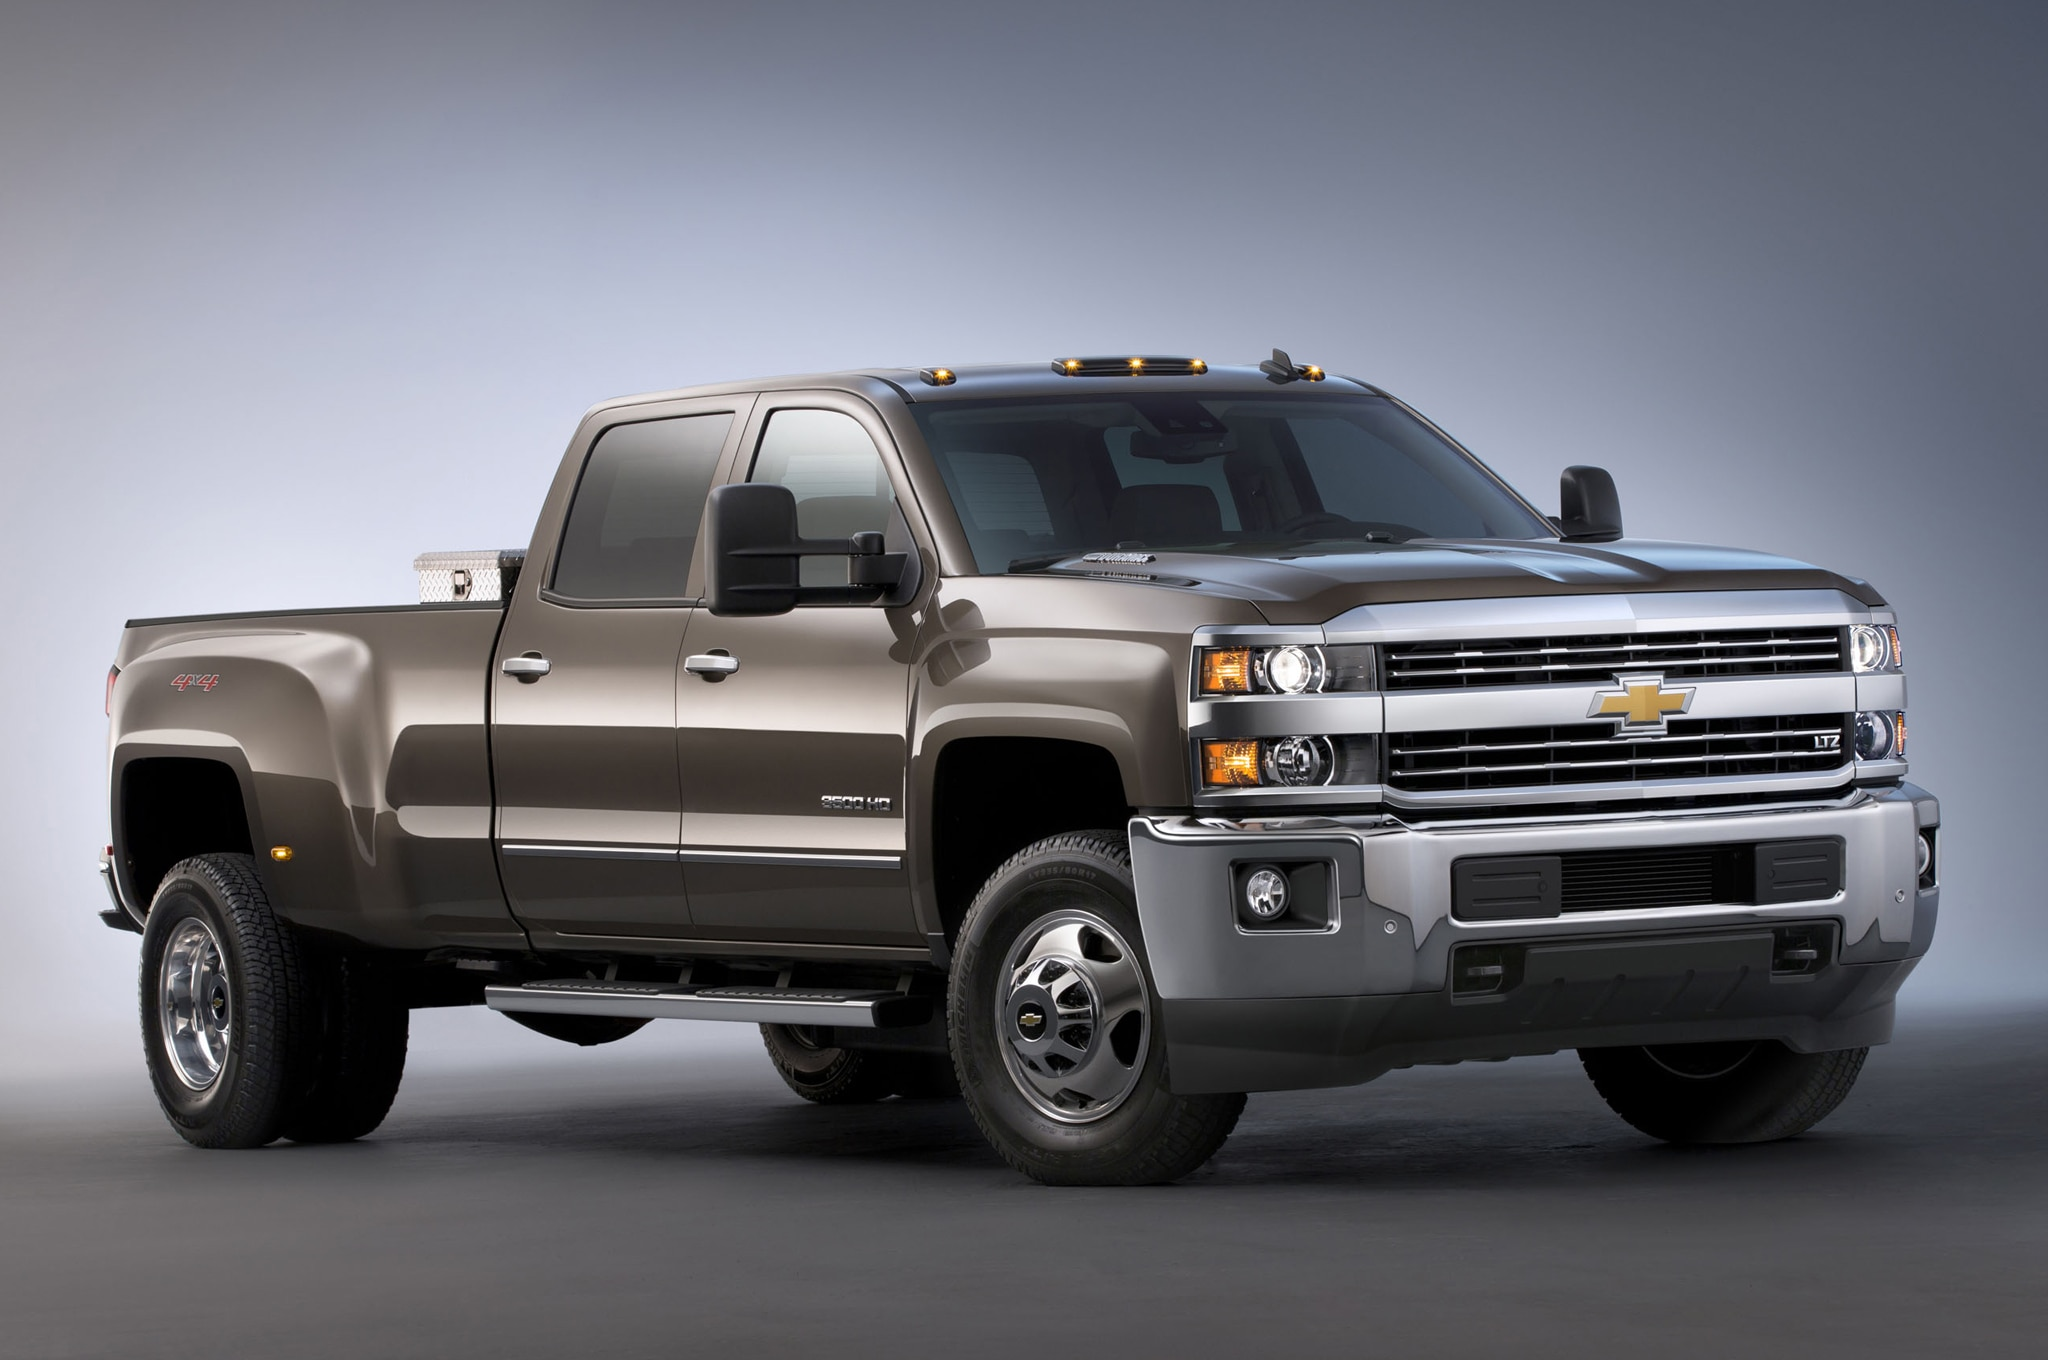 2015 Chevrolet Silverado 3500HD LTZ front three quarters